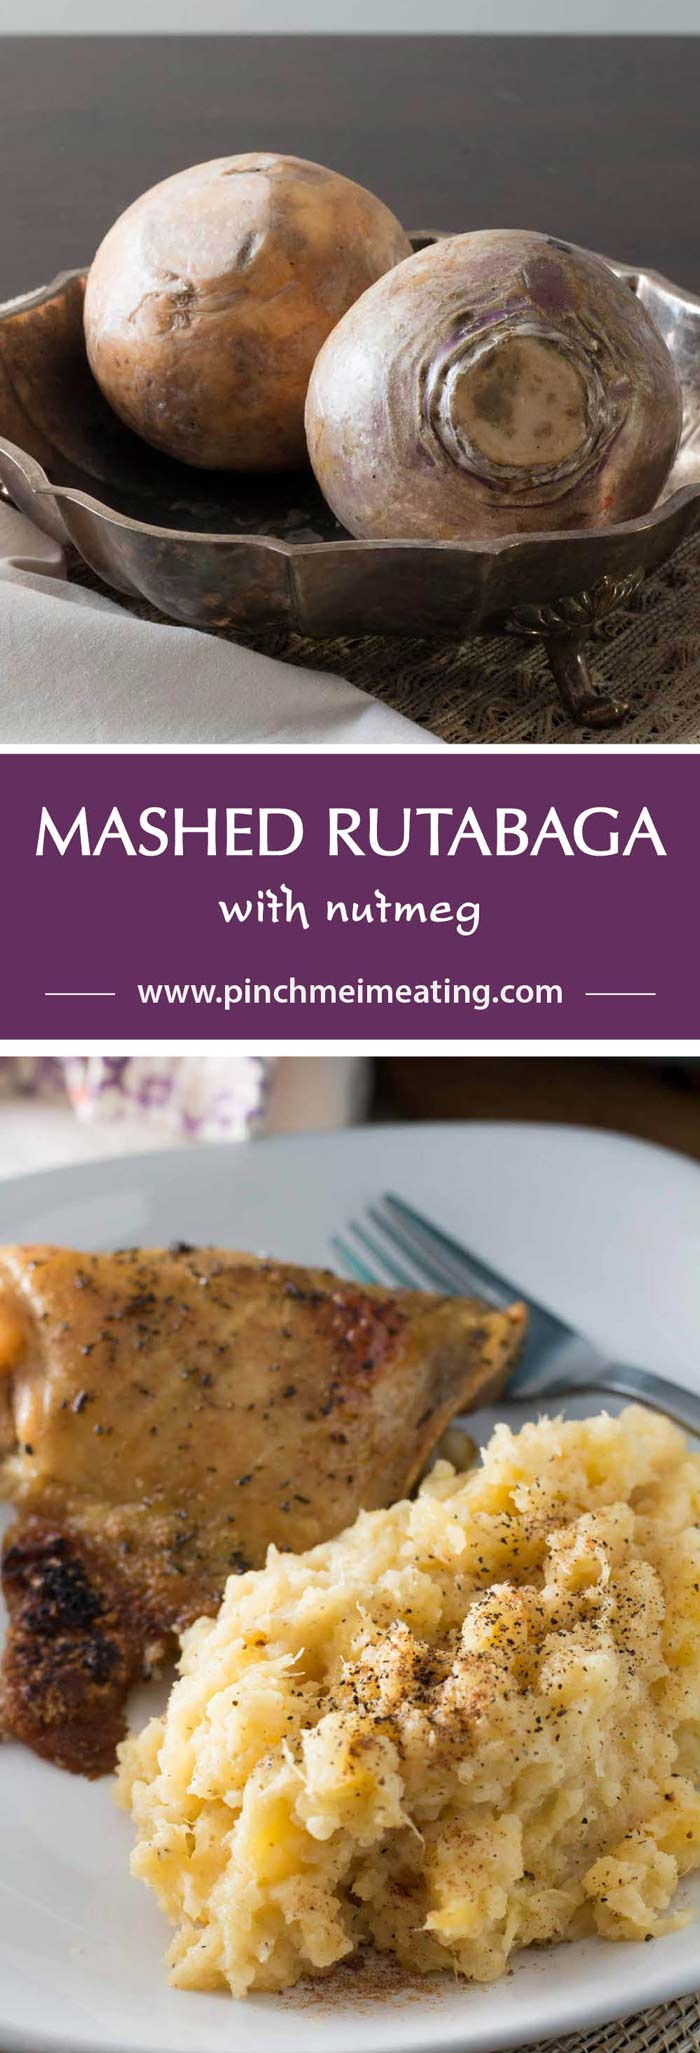 Mashed rutabaga is a delicious, naturally sweet low-carb Thanksgiving ...